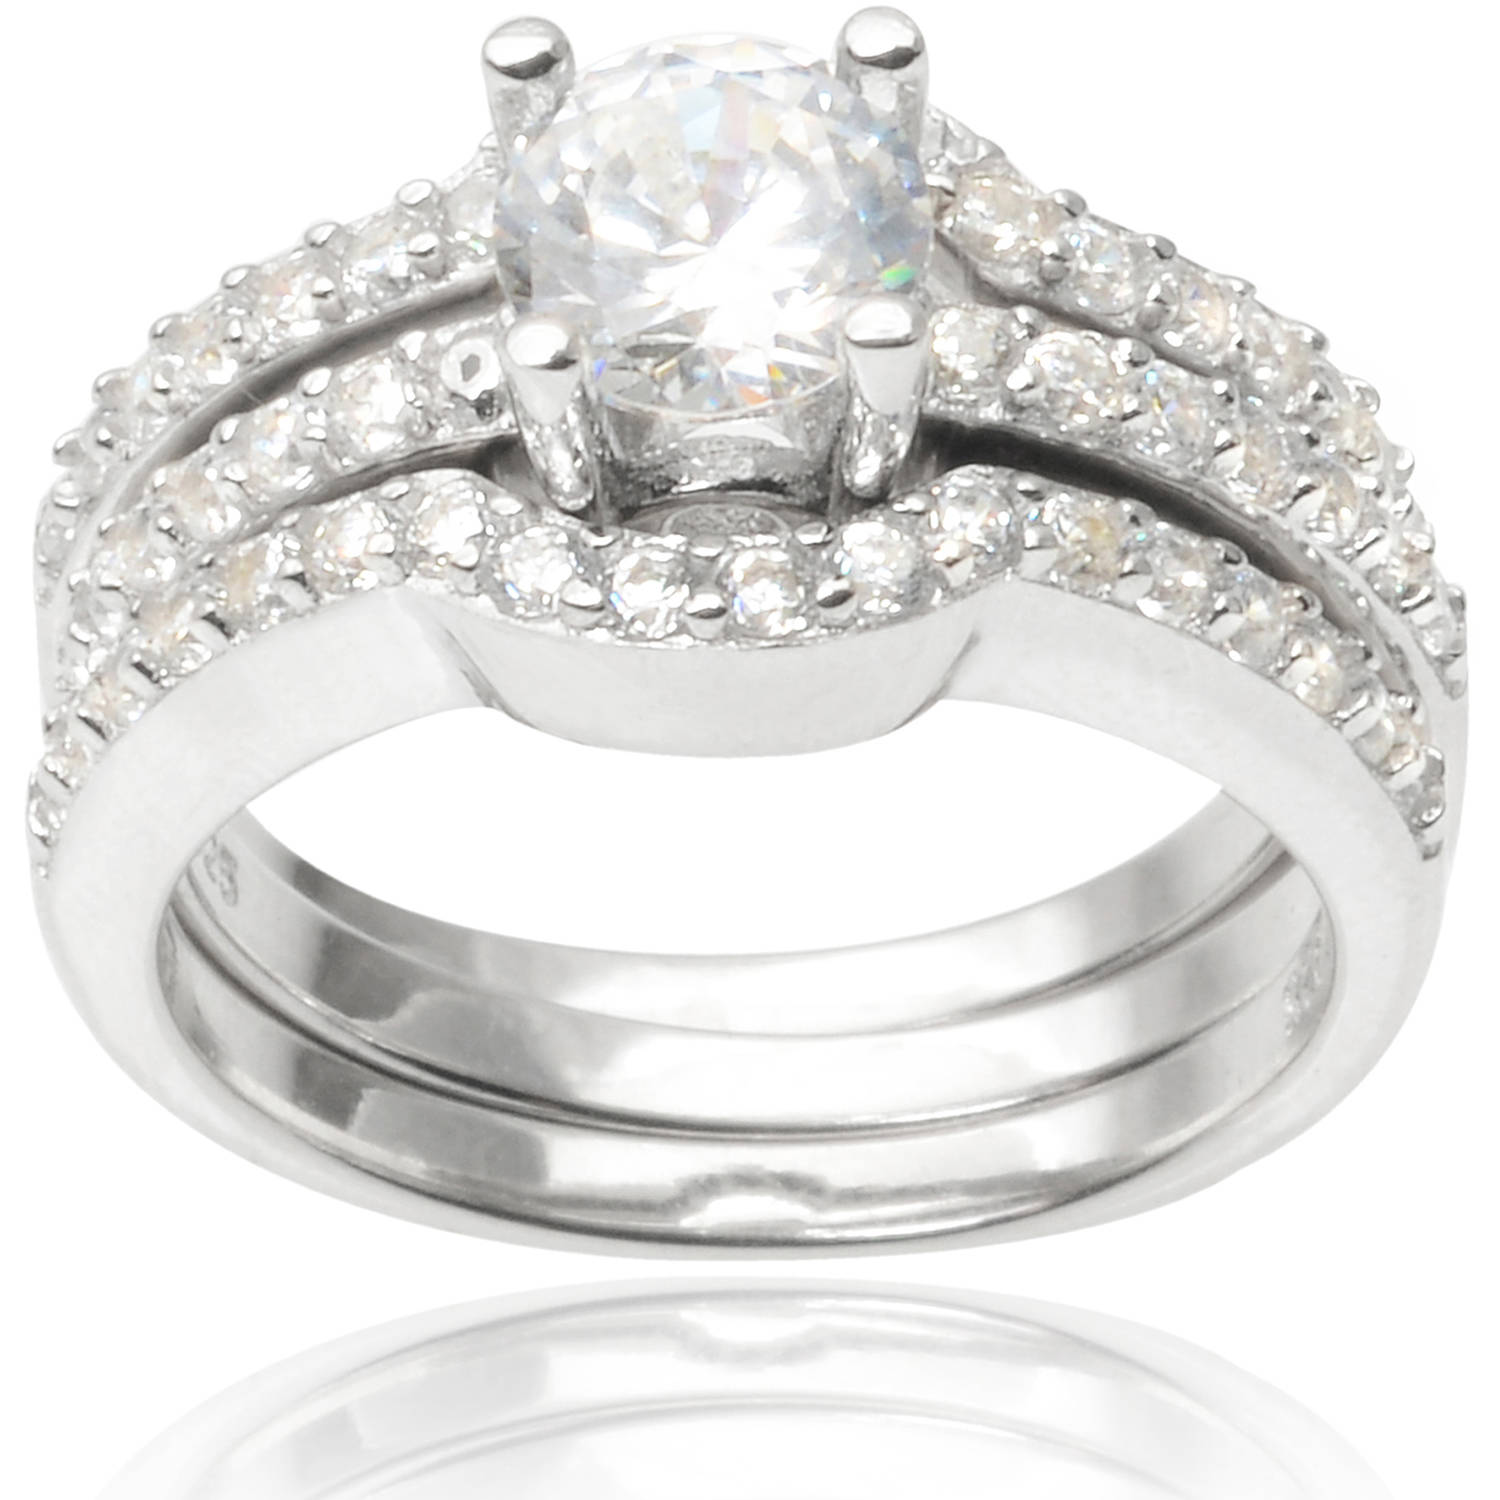 Alexandria Collection Sterling Silver 2 Carat T.G.W. Round Cubic Zirconia Bridal Ring Set